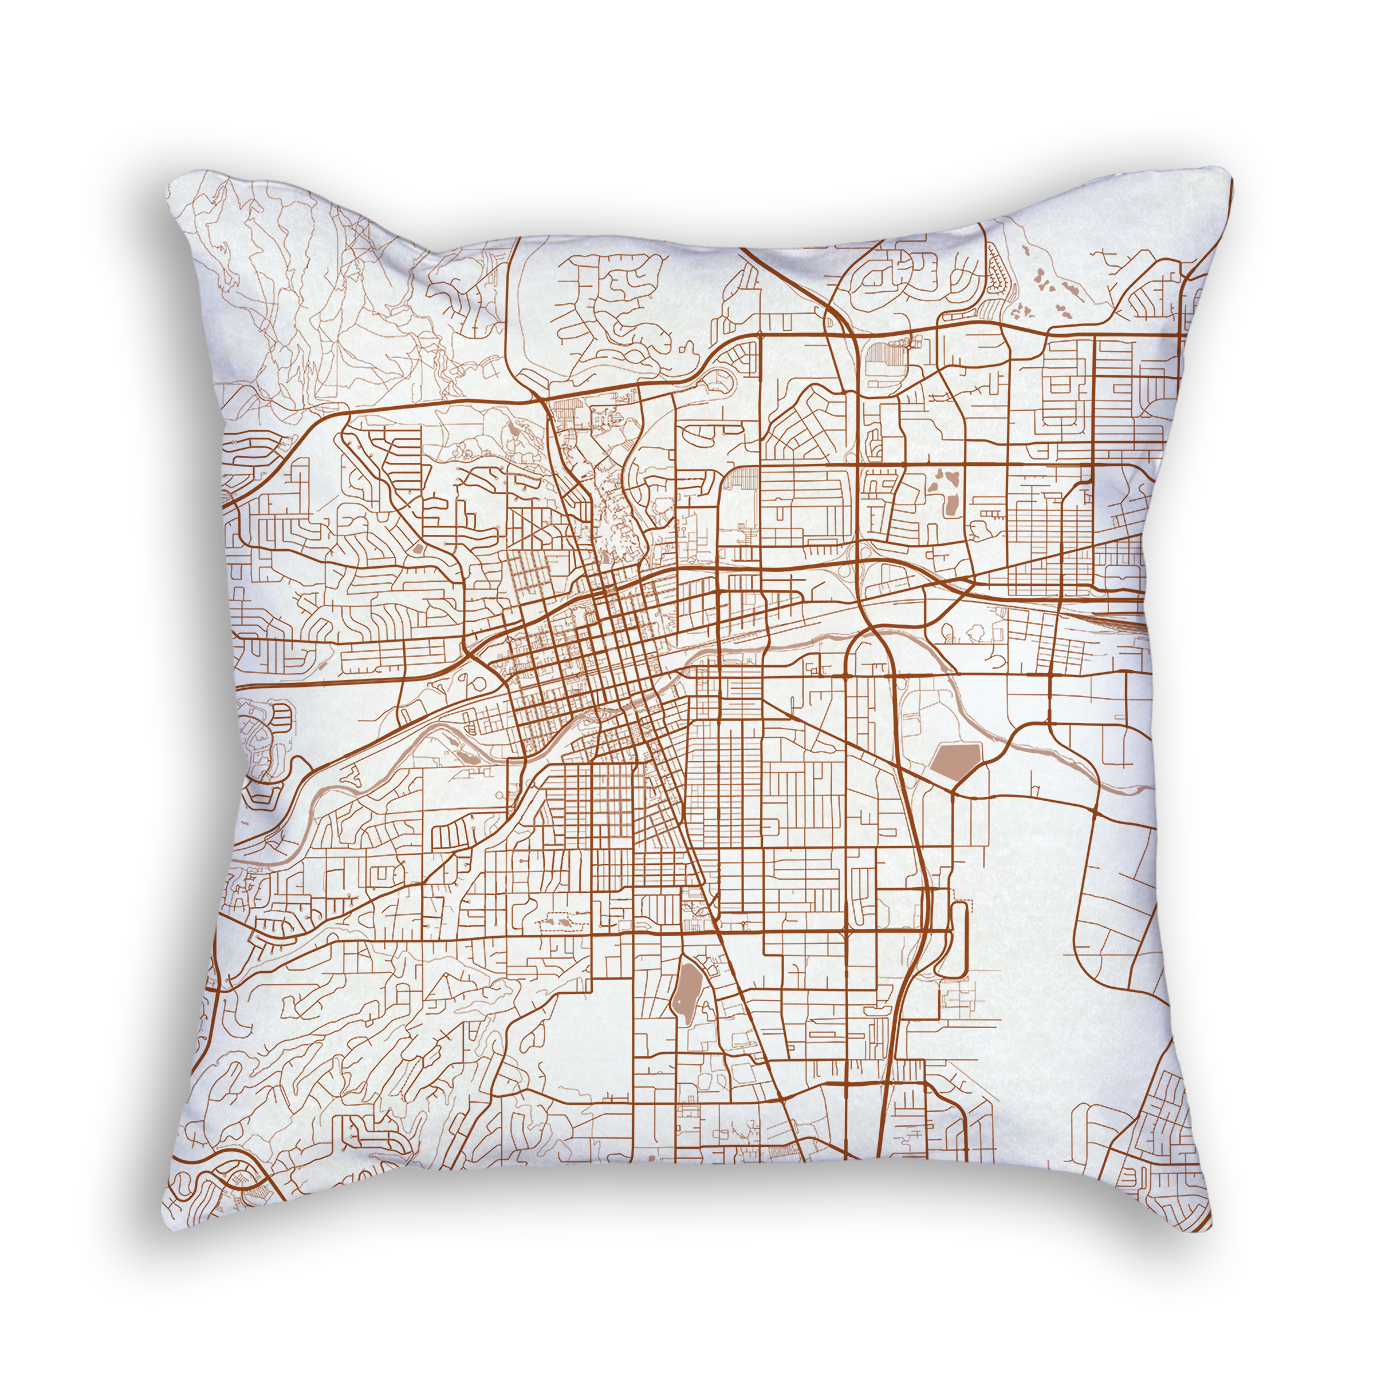 Reno Nevada City Map Art Decorative Throw Pillow